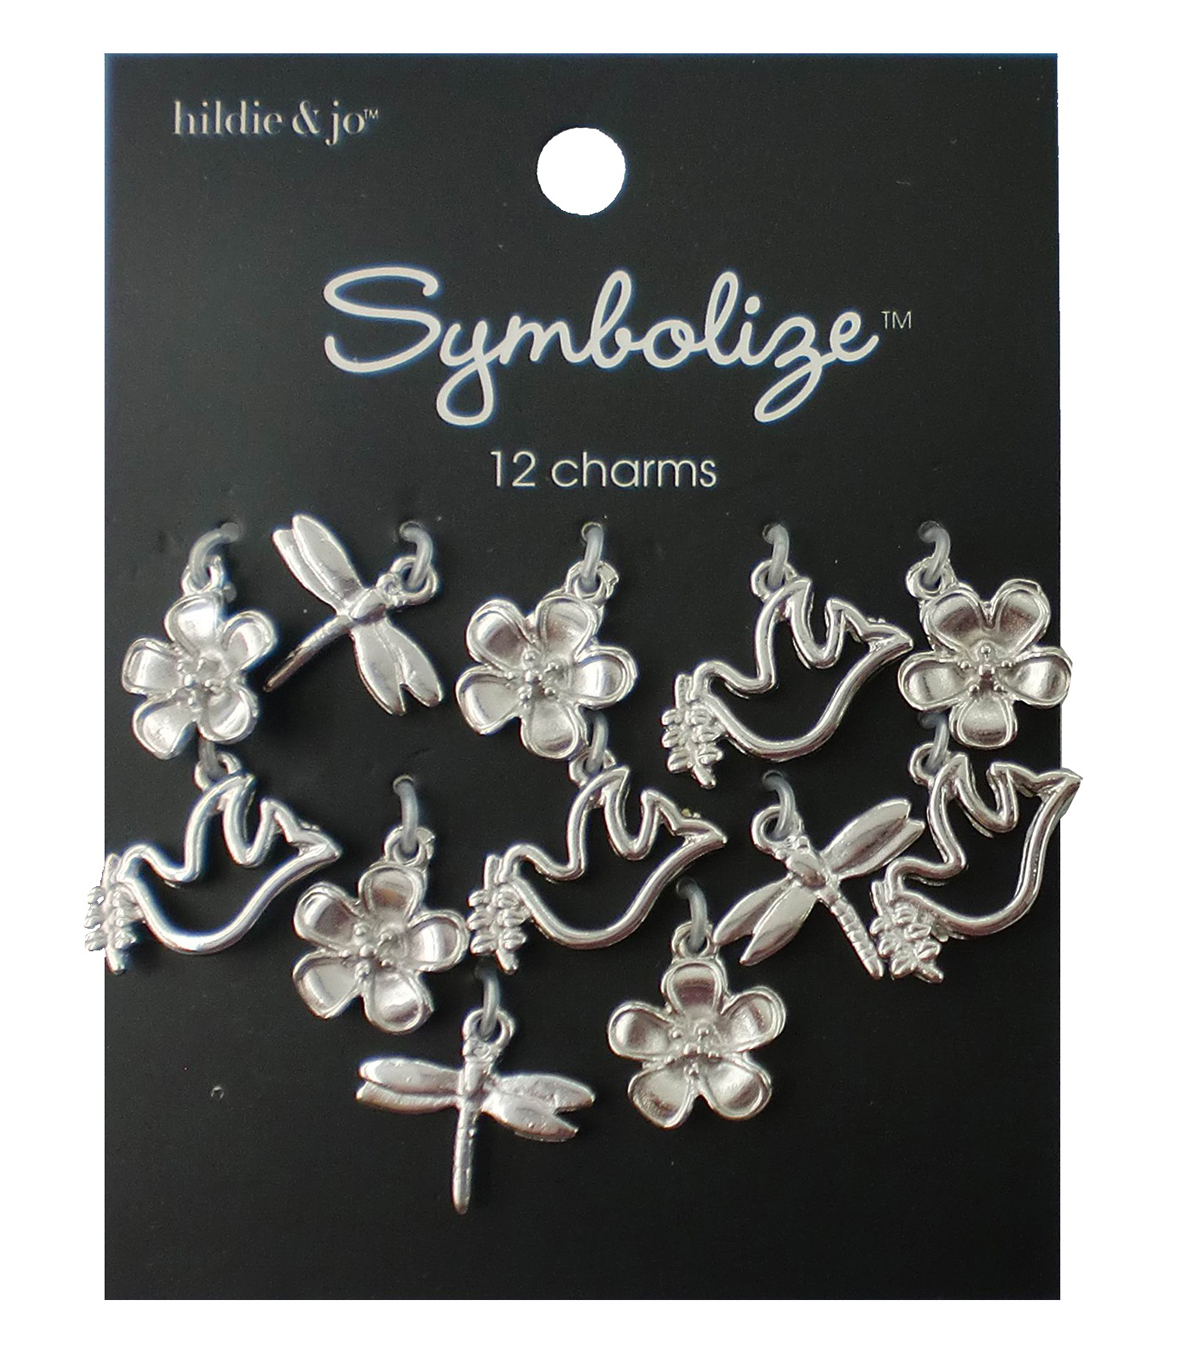 hildie & jo™ Symbolize 12 Pack Nature Silver Charms